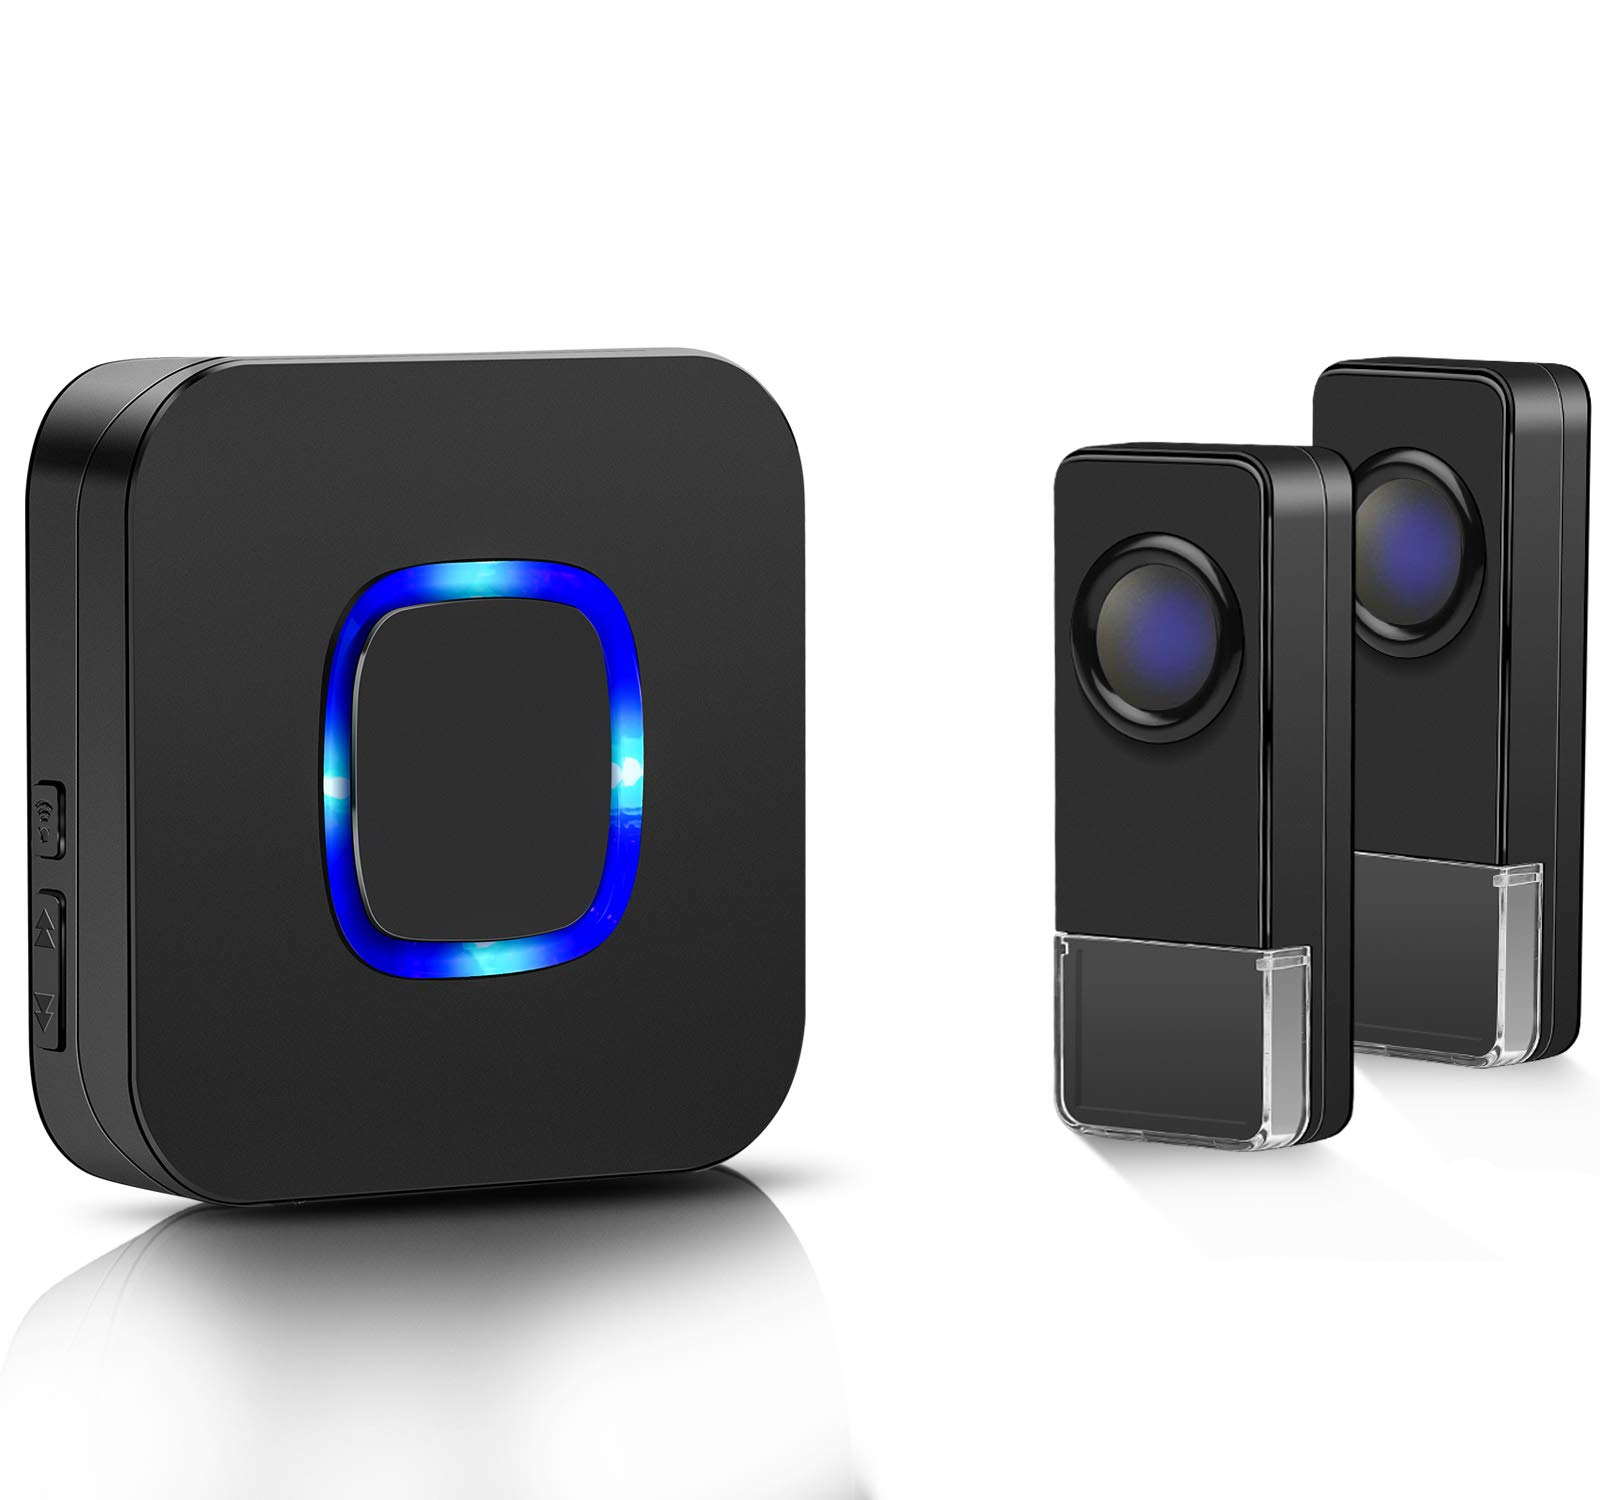 Coolqiya Wireless Doorbells Chimes Kit for Home with 2 Remote Transmitters and 1 Plug in Receiver